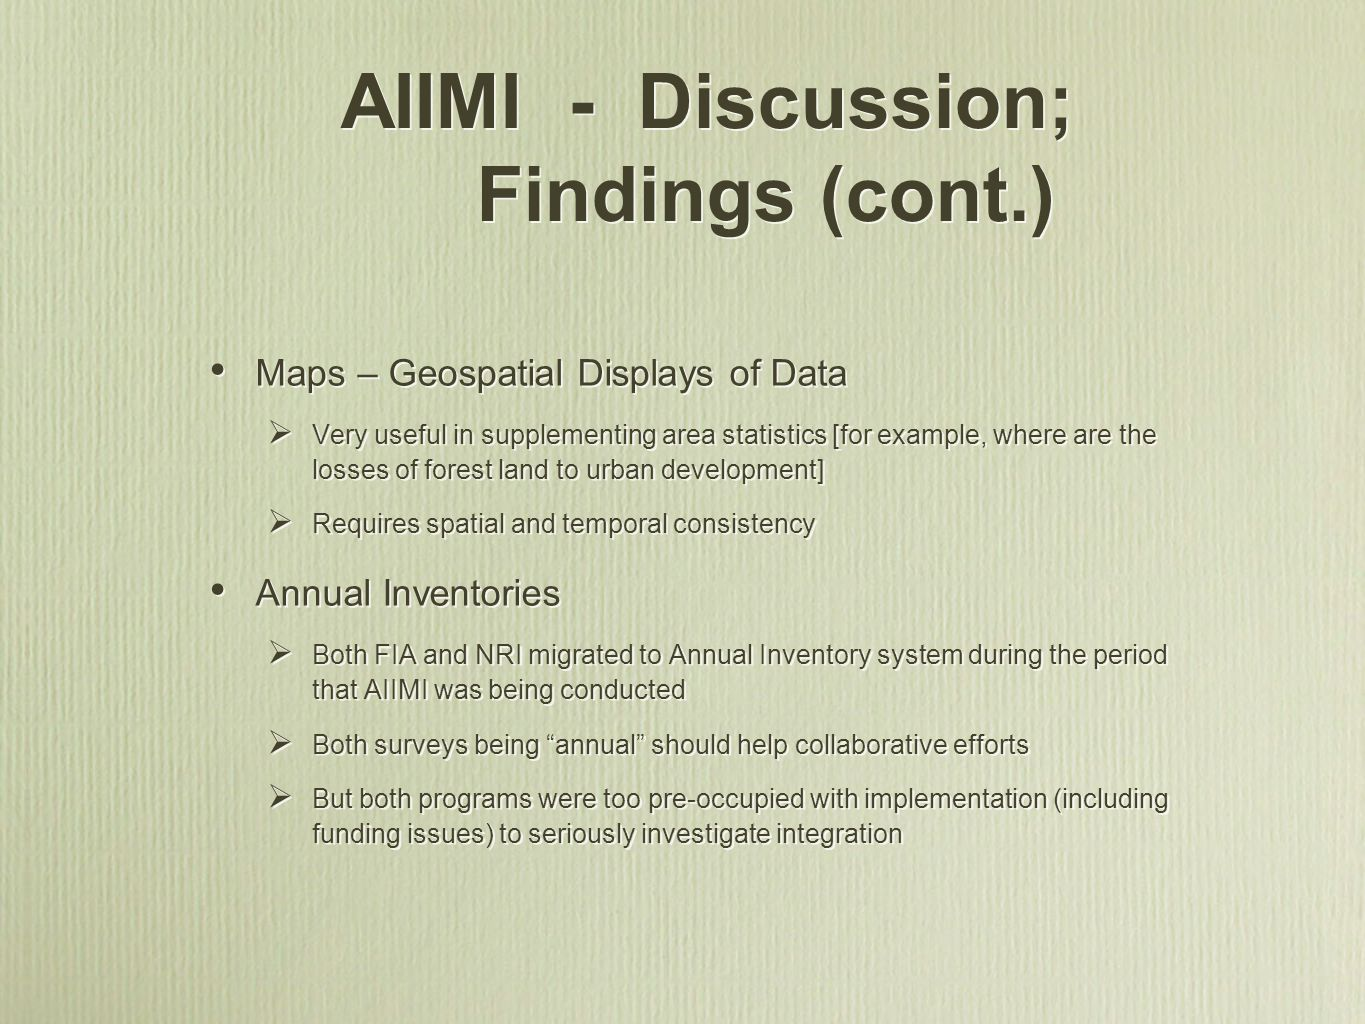 AIIMI - Discussion; Findings (cont.) Maps – Geospatial Displays of Data Very useful in supplementing area statistics [for example, where are the losse